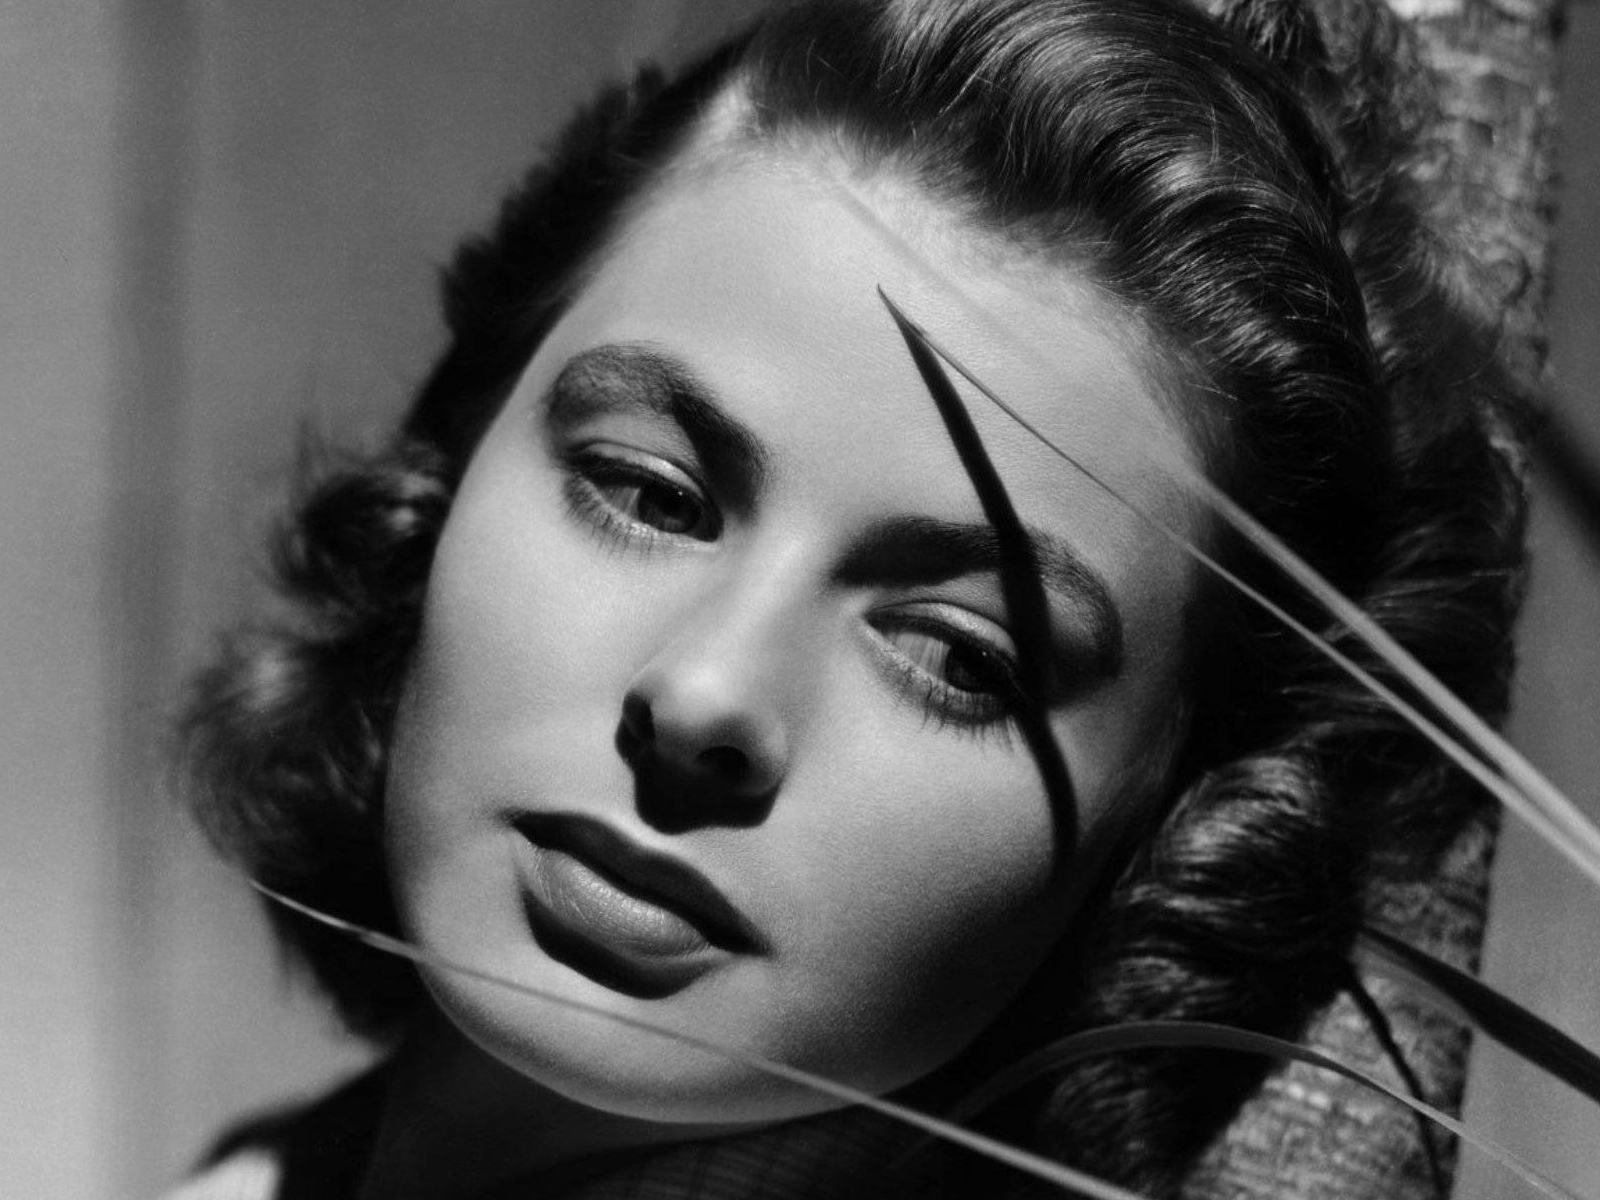 ingrid bergman wallpaper 1600x1200